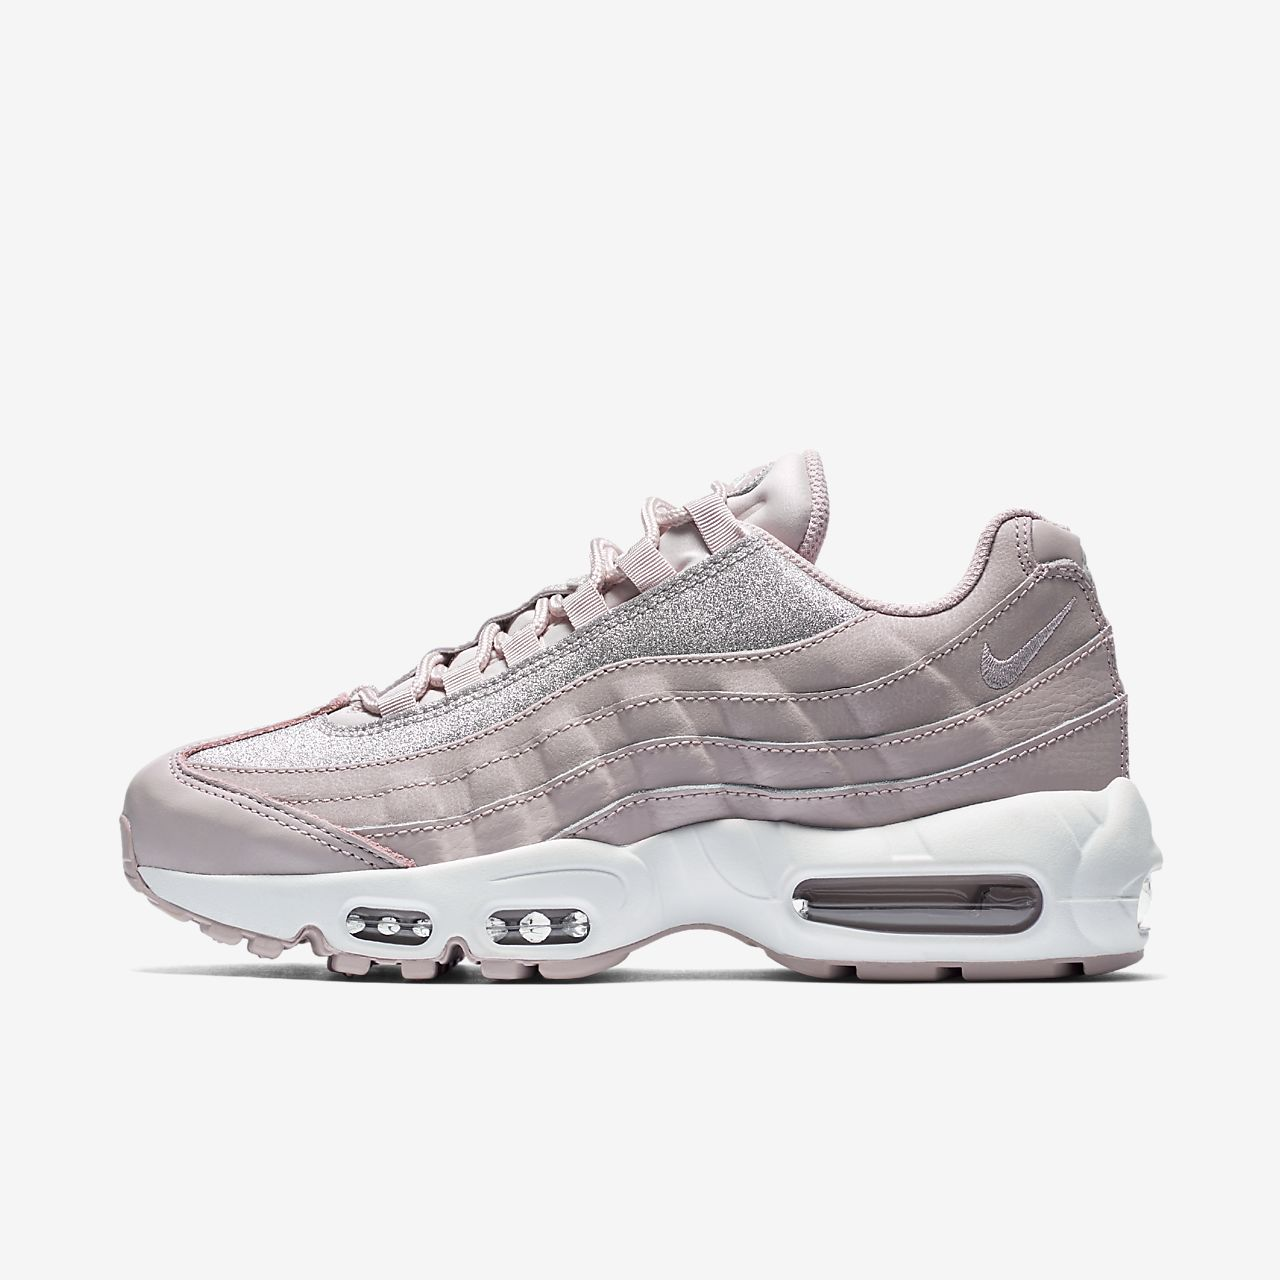 new style 23f33 b53a1 ... Chaussure Nike Air Max 95 SE Glitter pour Femme